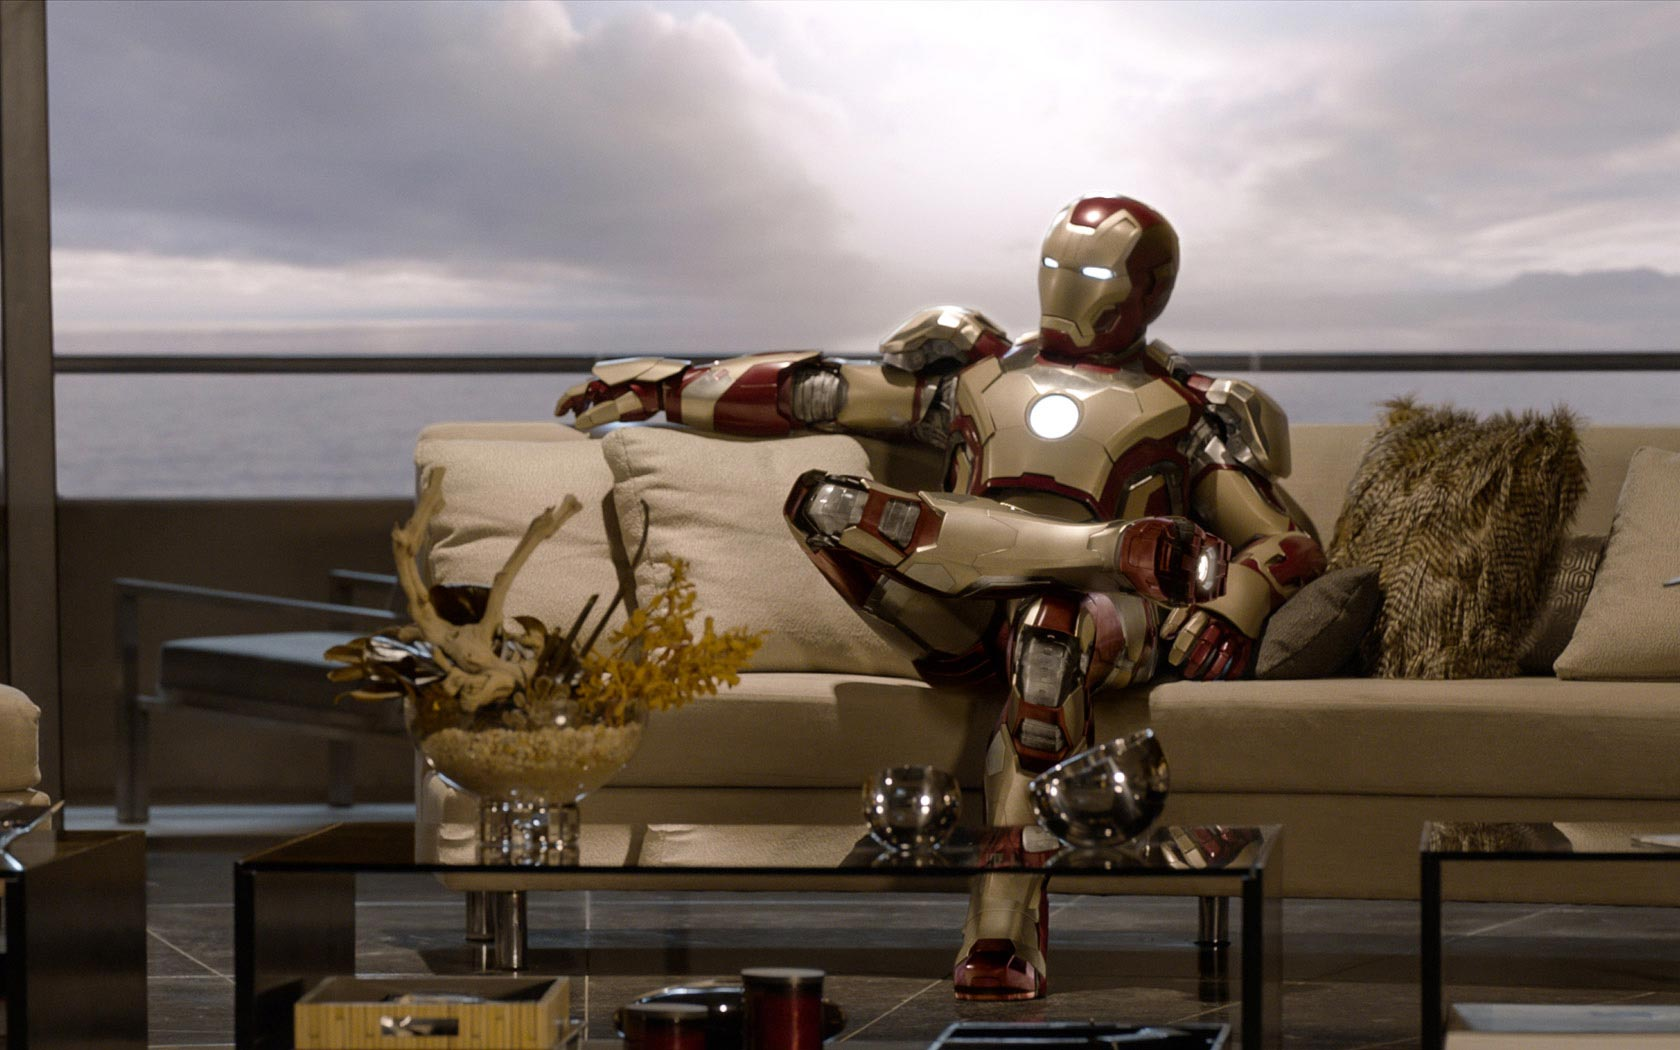 Of 2013 Marvel Iron Man 3 HD Wallpapers Movie Scenes Release Date 1680x1050